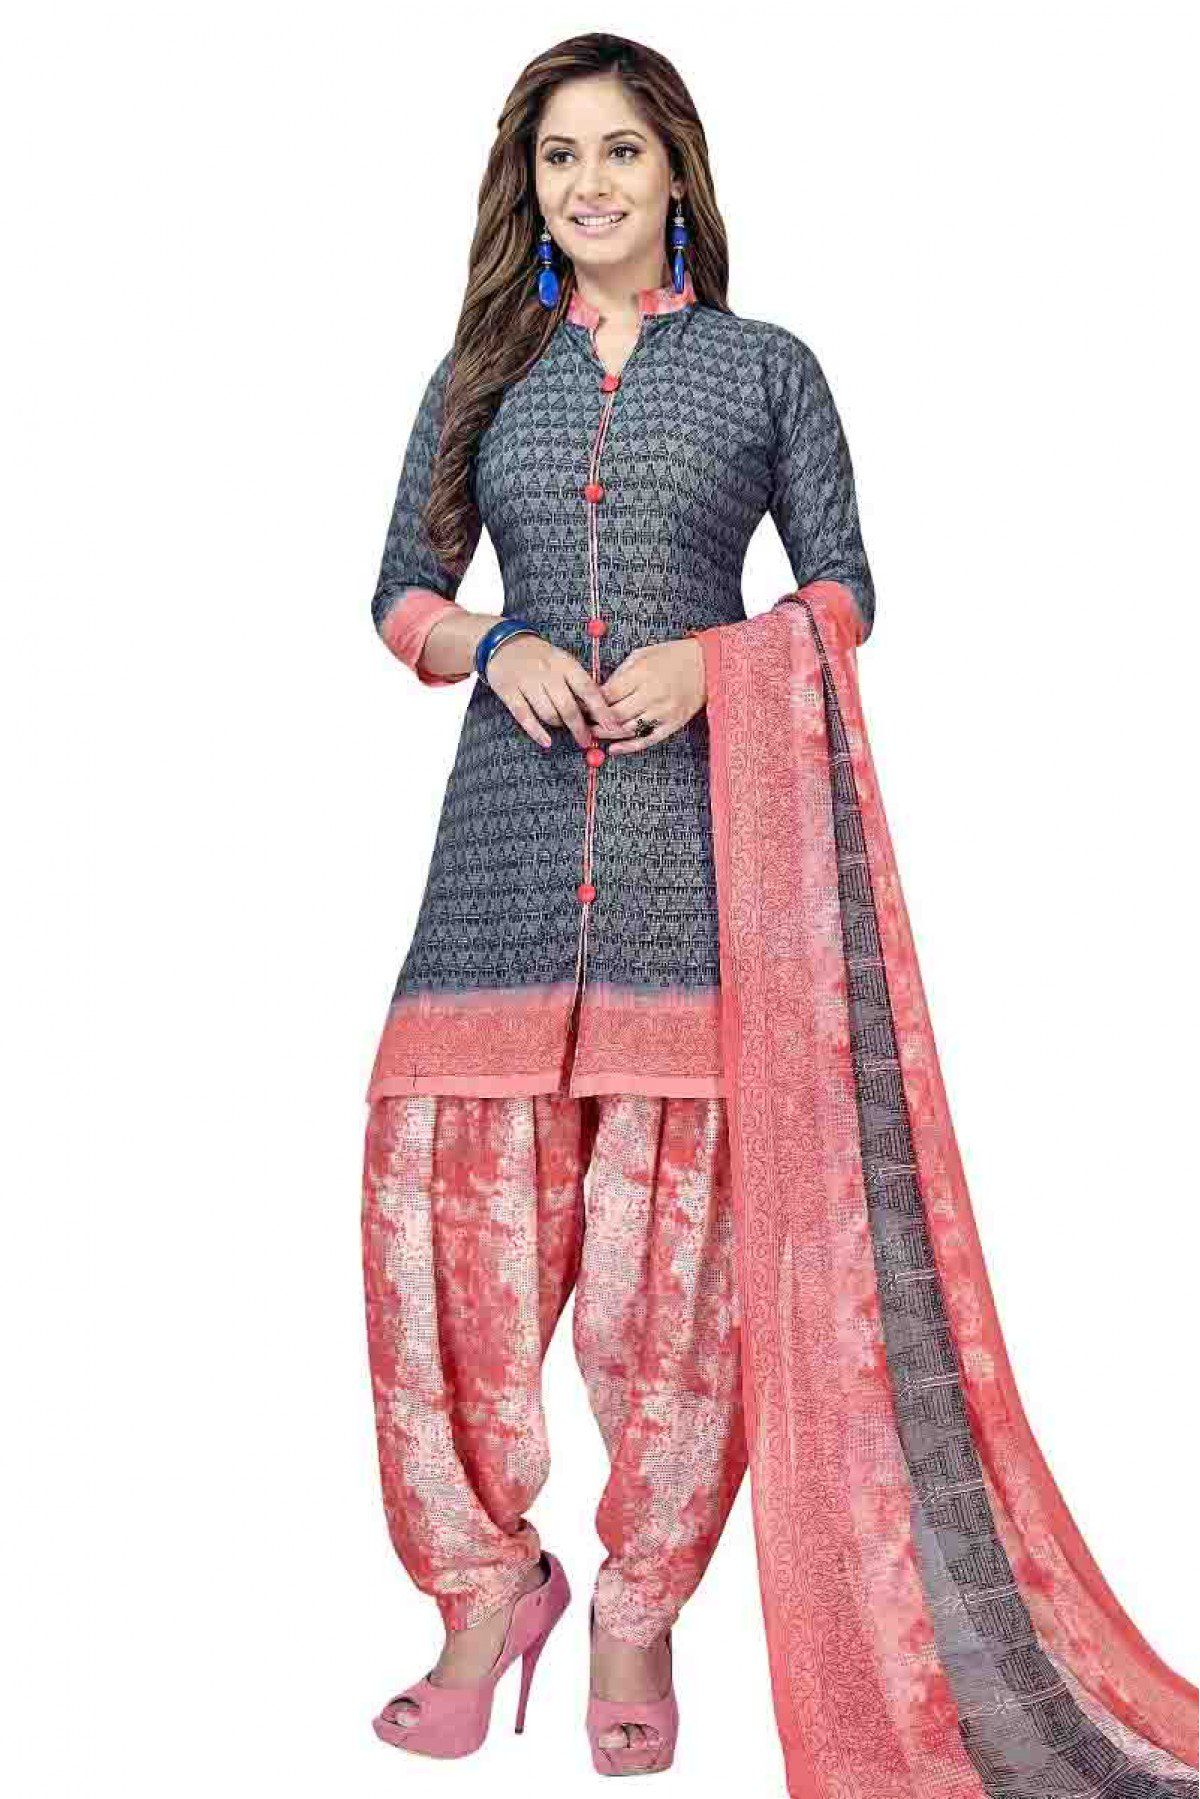 58f34fd82d Grey Colour Leon Crepe Fabric Patiala Suit Comes with Matching Dupatta and  bottom fabric This Patiala Suit Is crafted with Printed This Patiala Suit  Comes ...